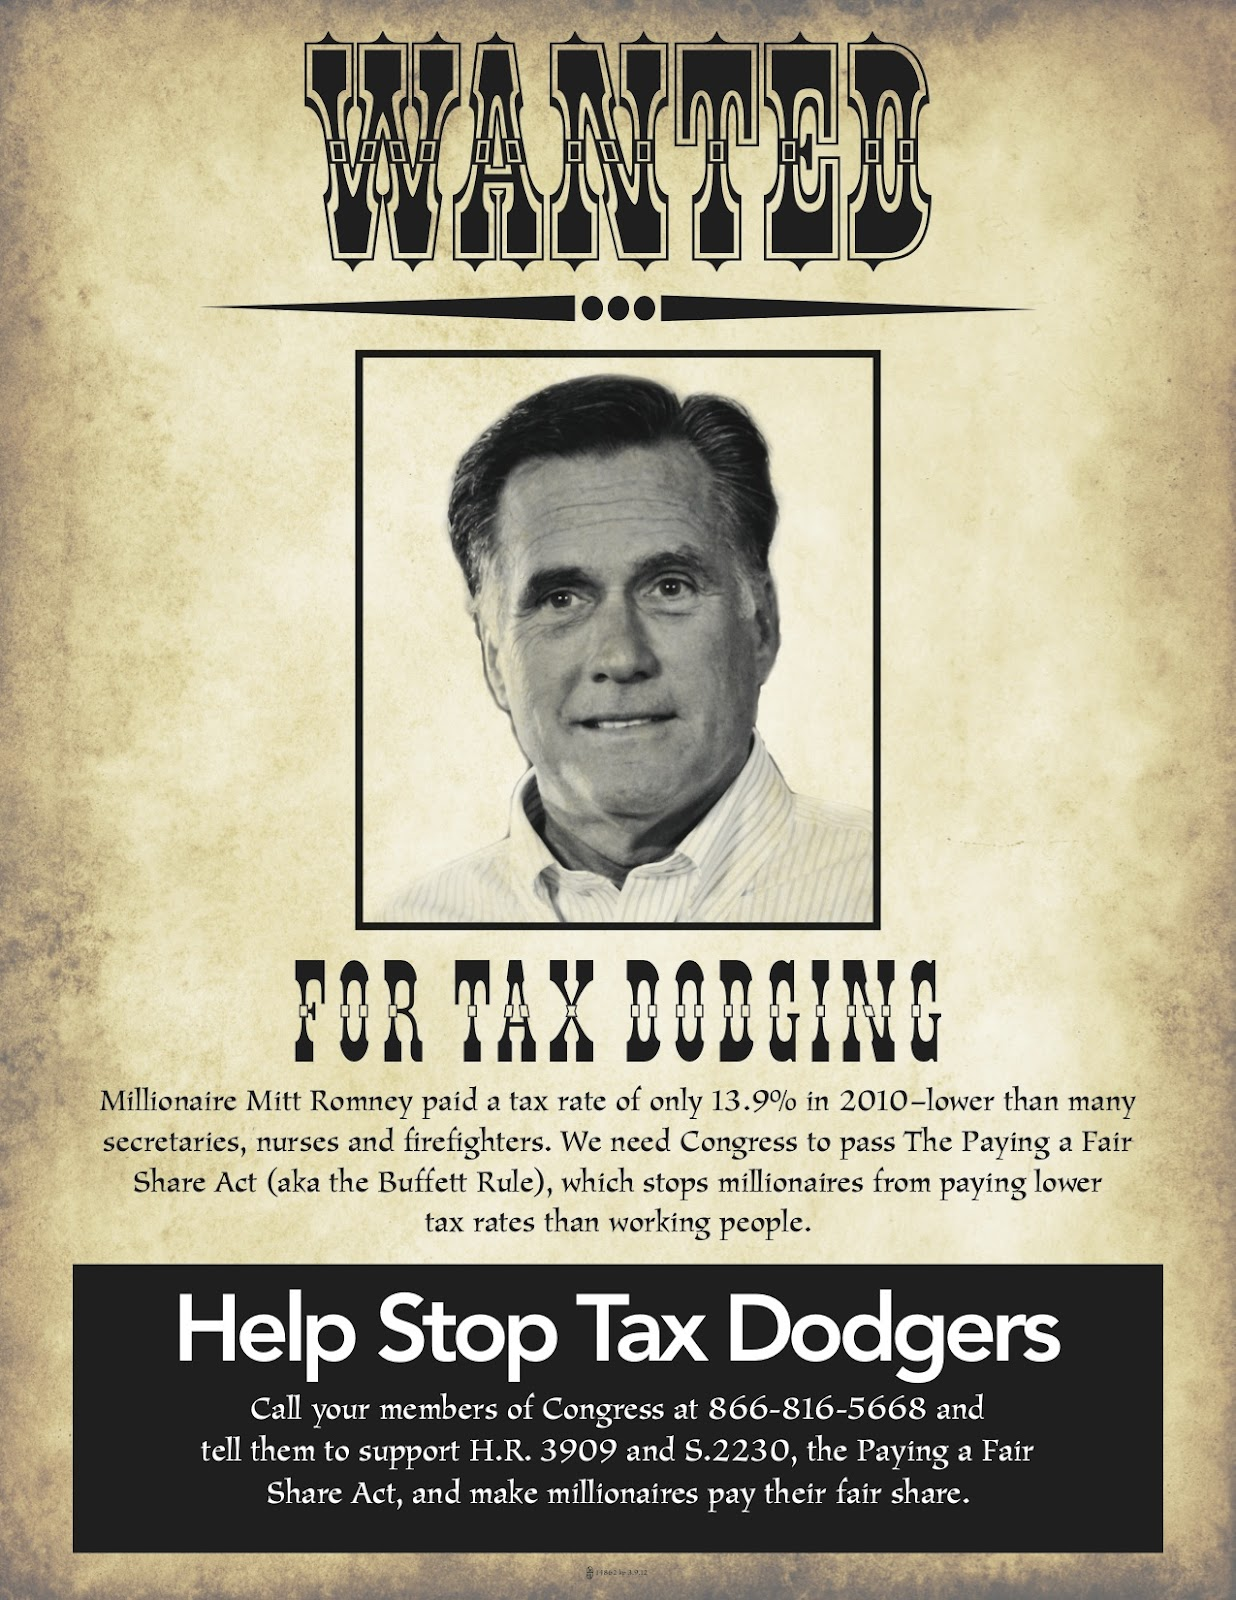 mitt whree are the taxes